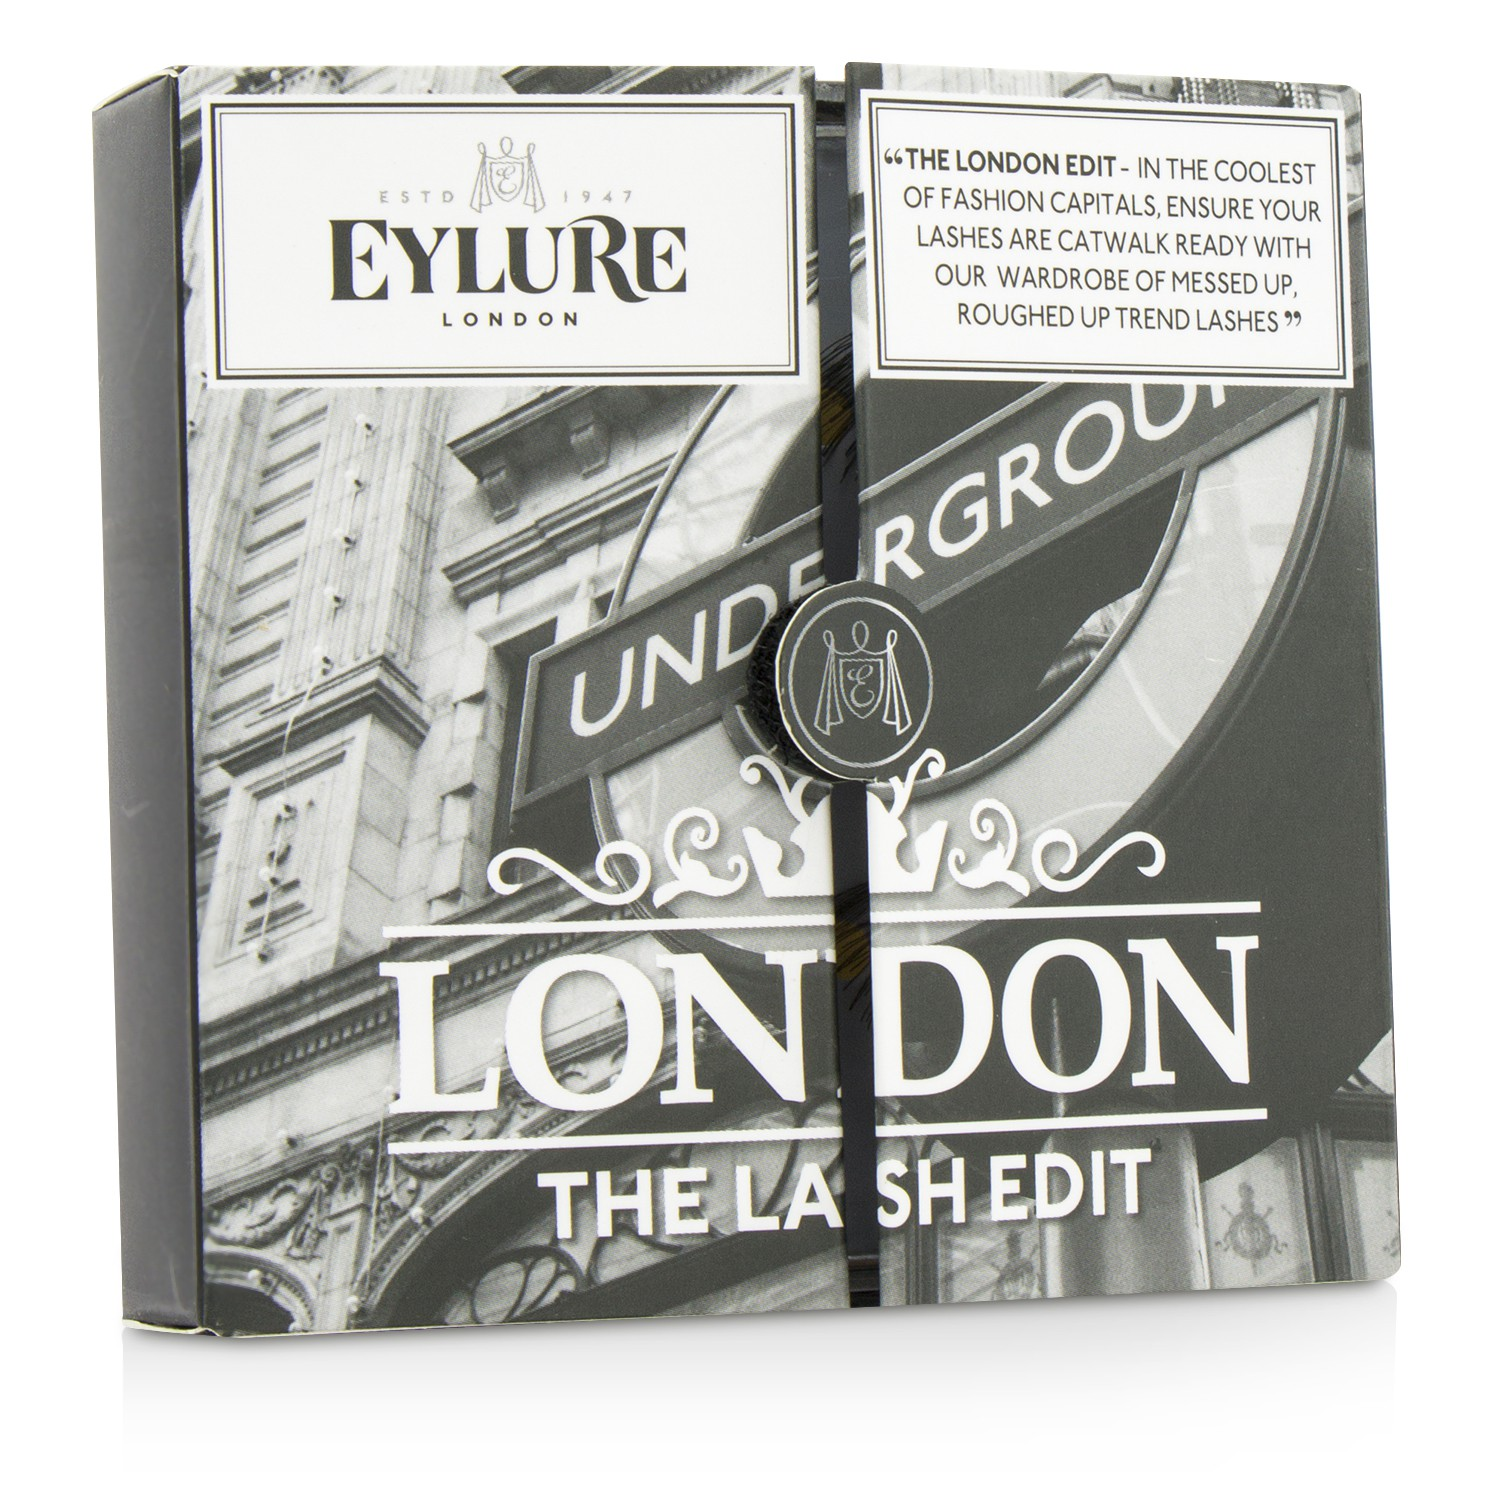 愛潞兒 Eylure - 假睫毛萬用包 The London Edit False Lashes Multipack